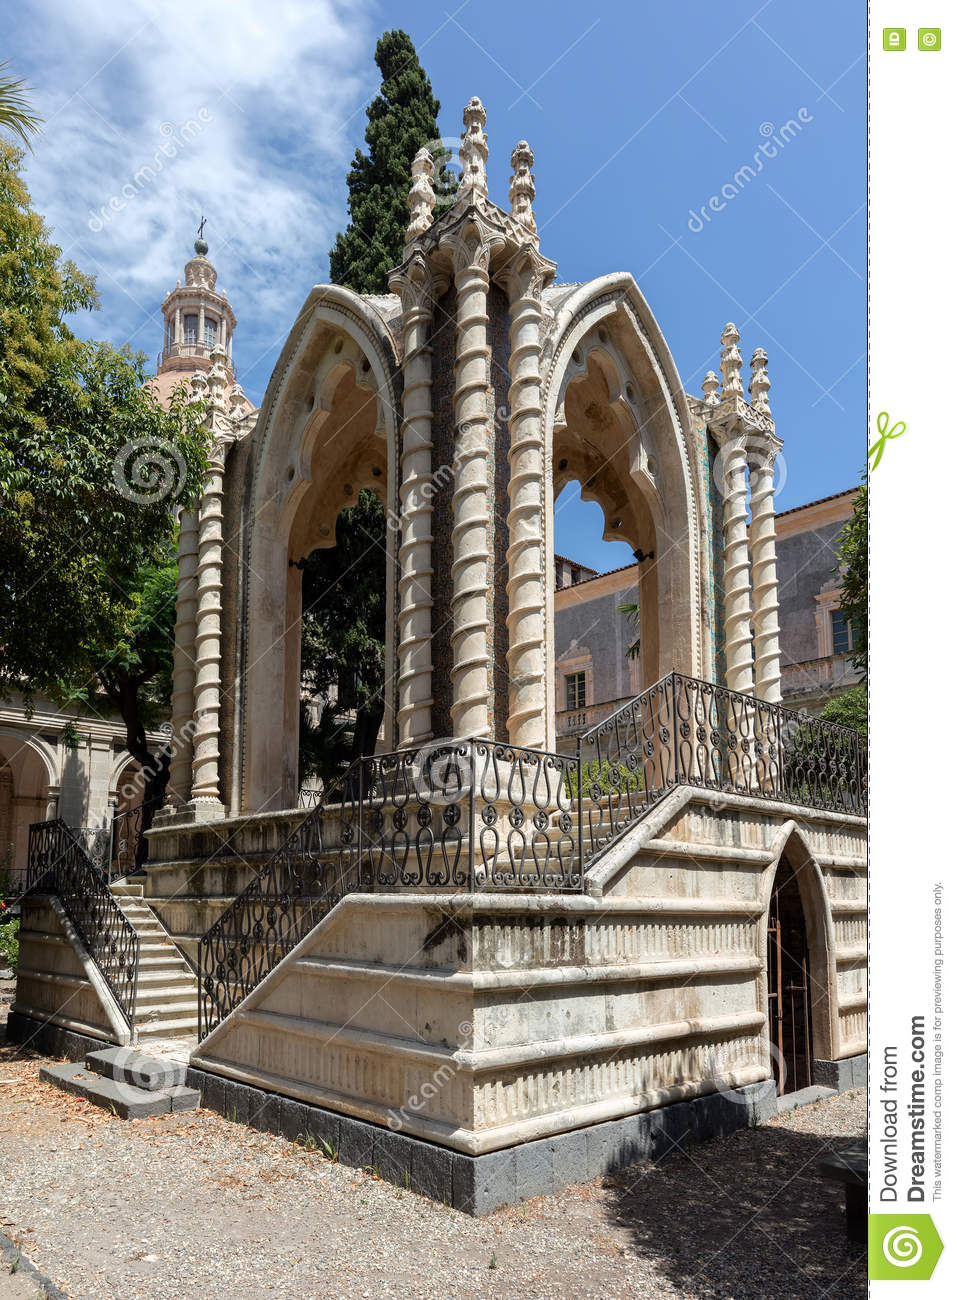 Gothic Pavilion In The Cloister Of San Nicolo L`Arena Stock Photo.